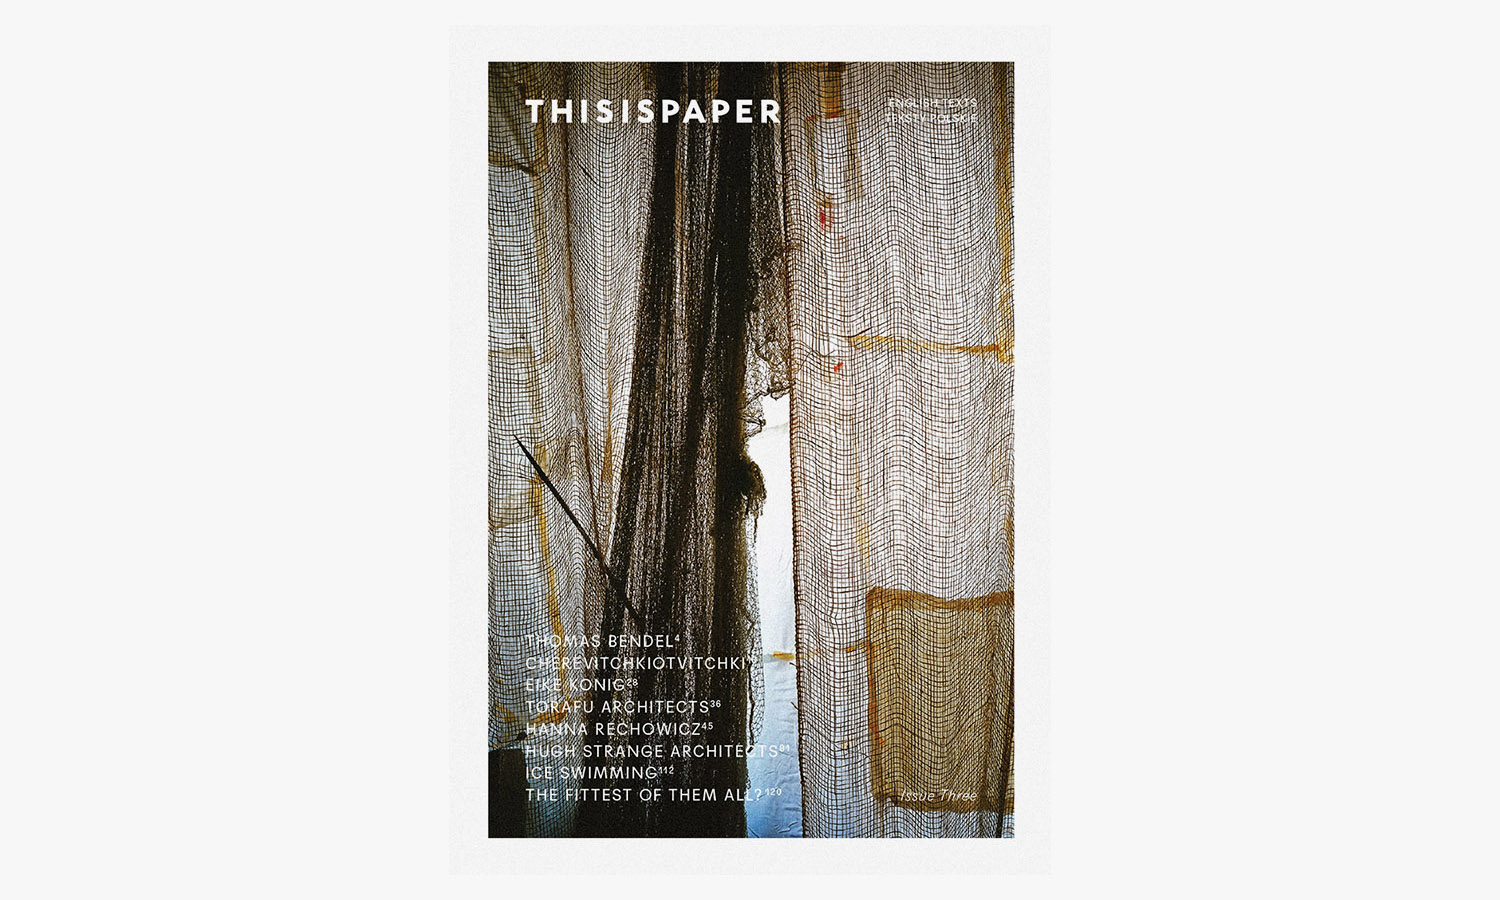 Thisispaper-magazine-3-featured-0